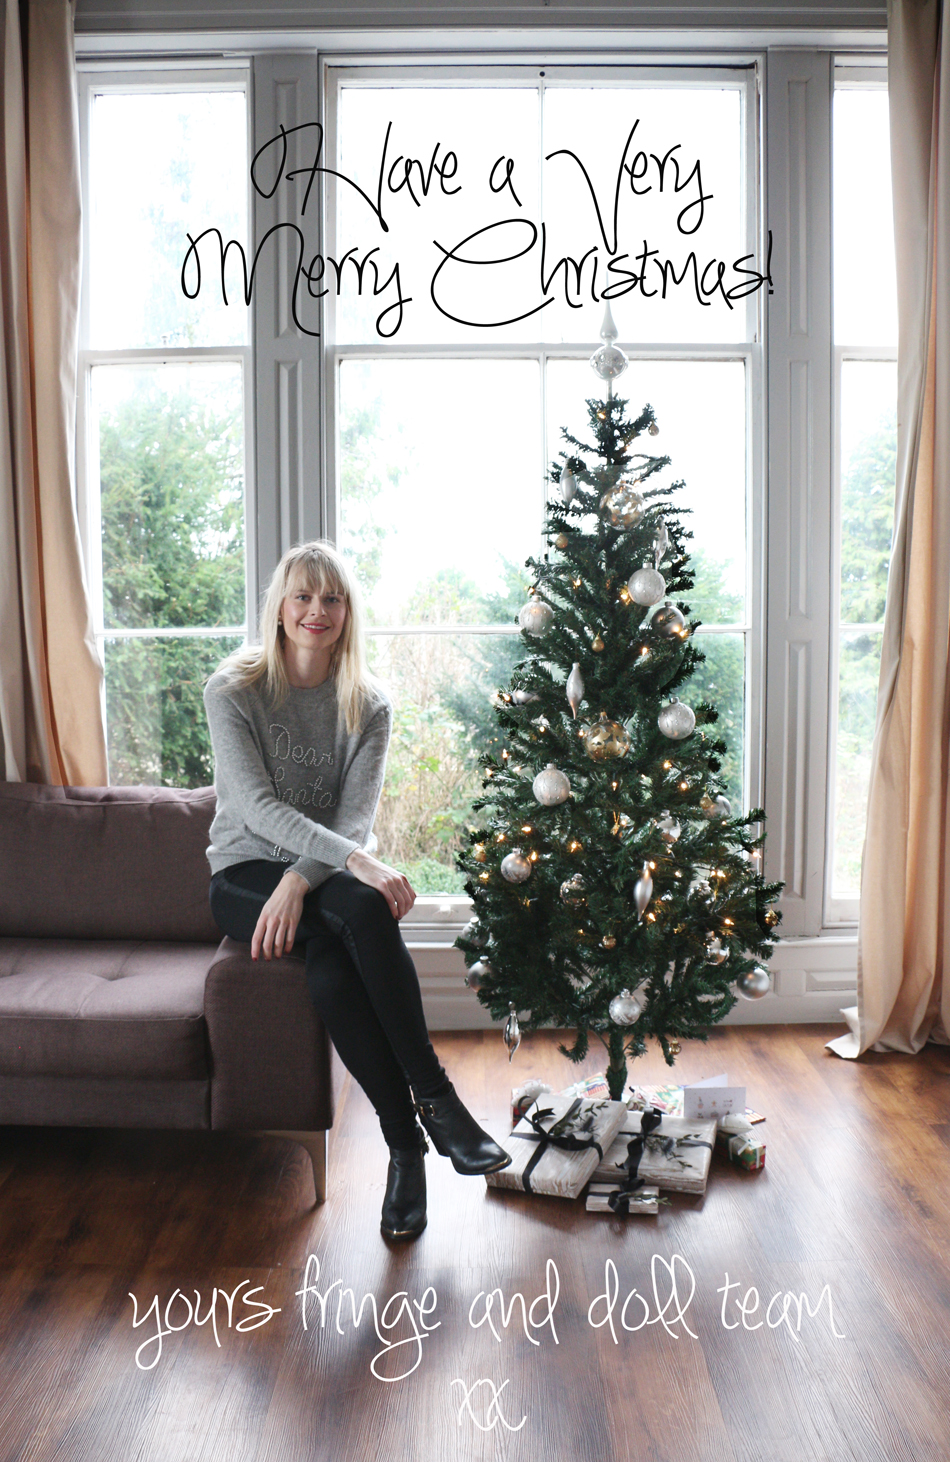 Merry Christmas Fringe and Doll 2014 950px